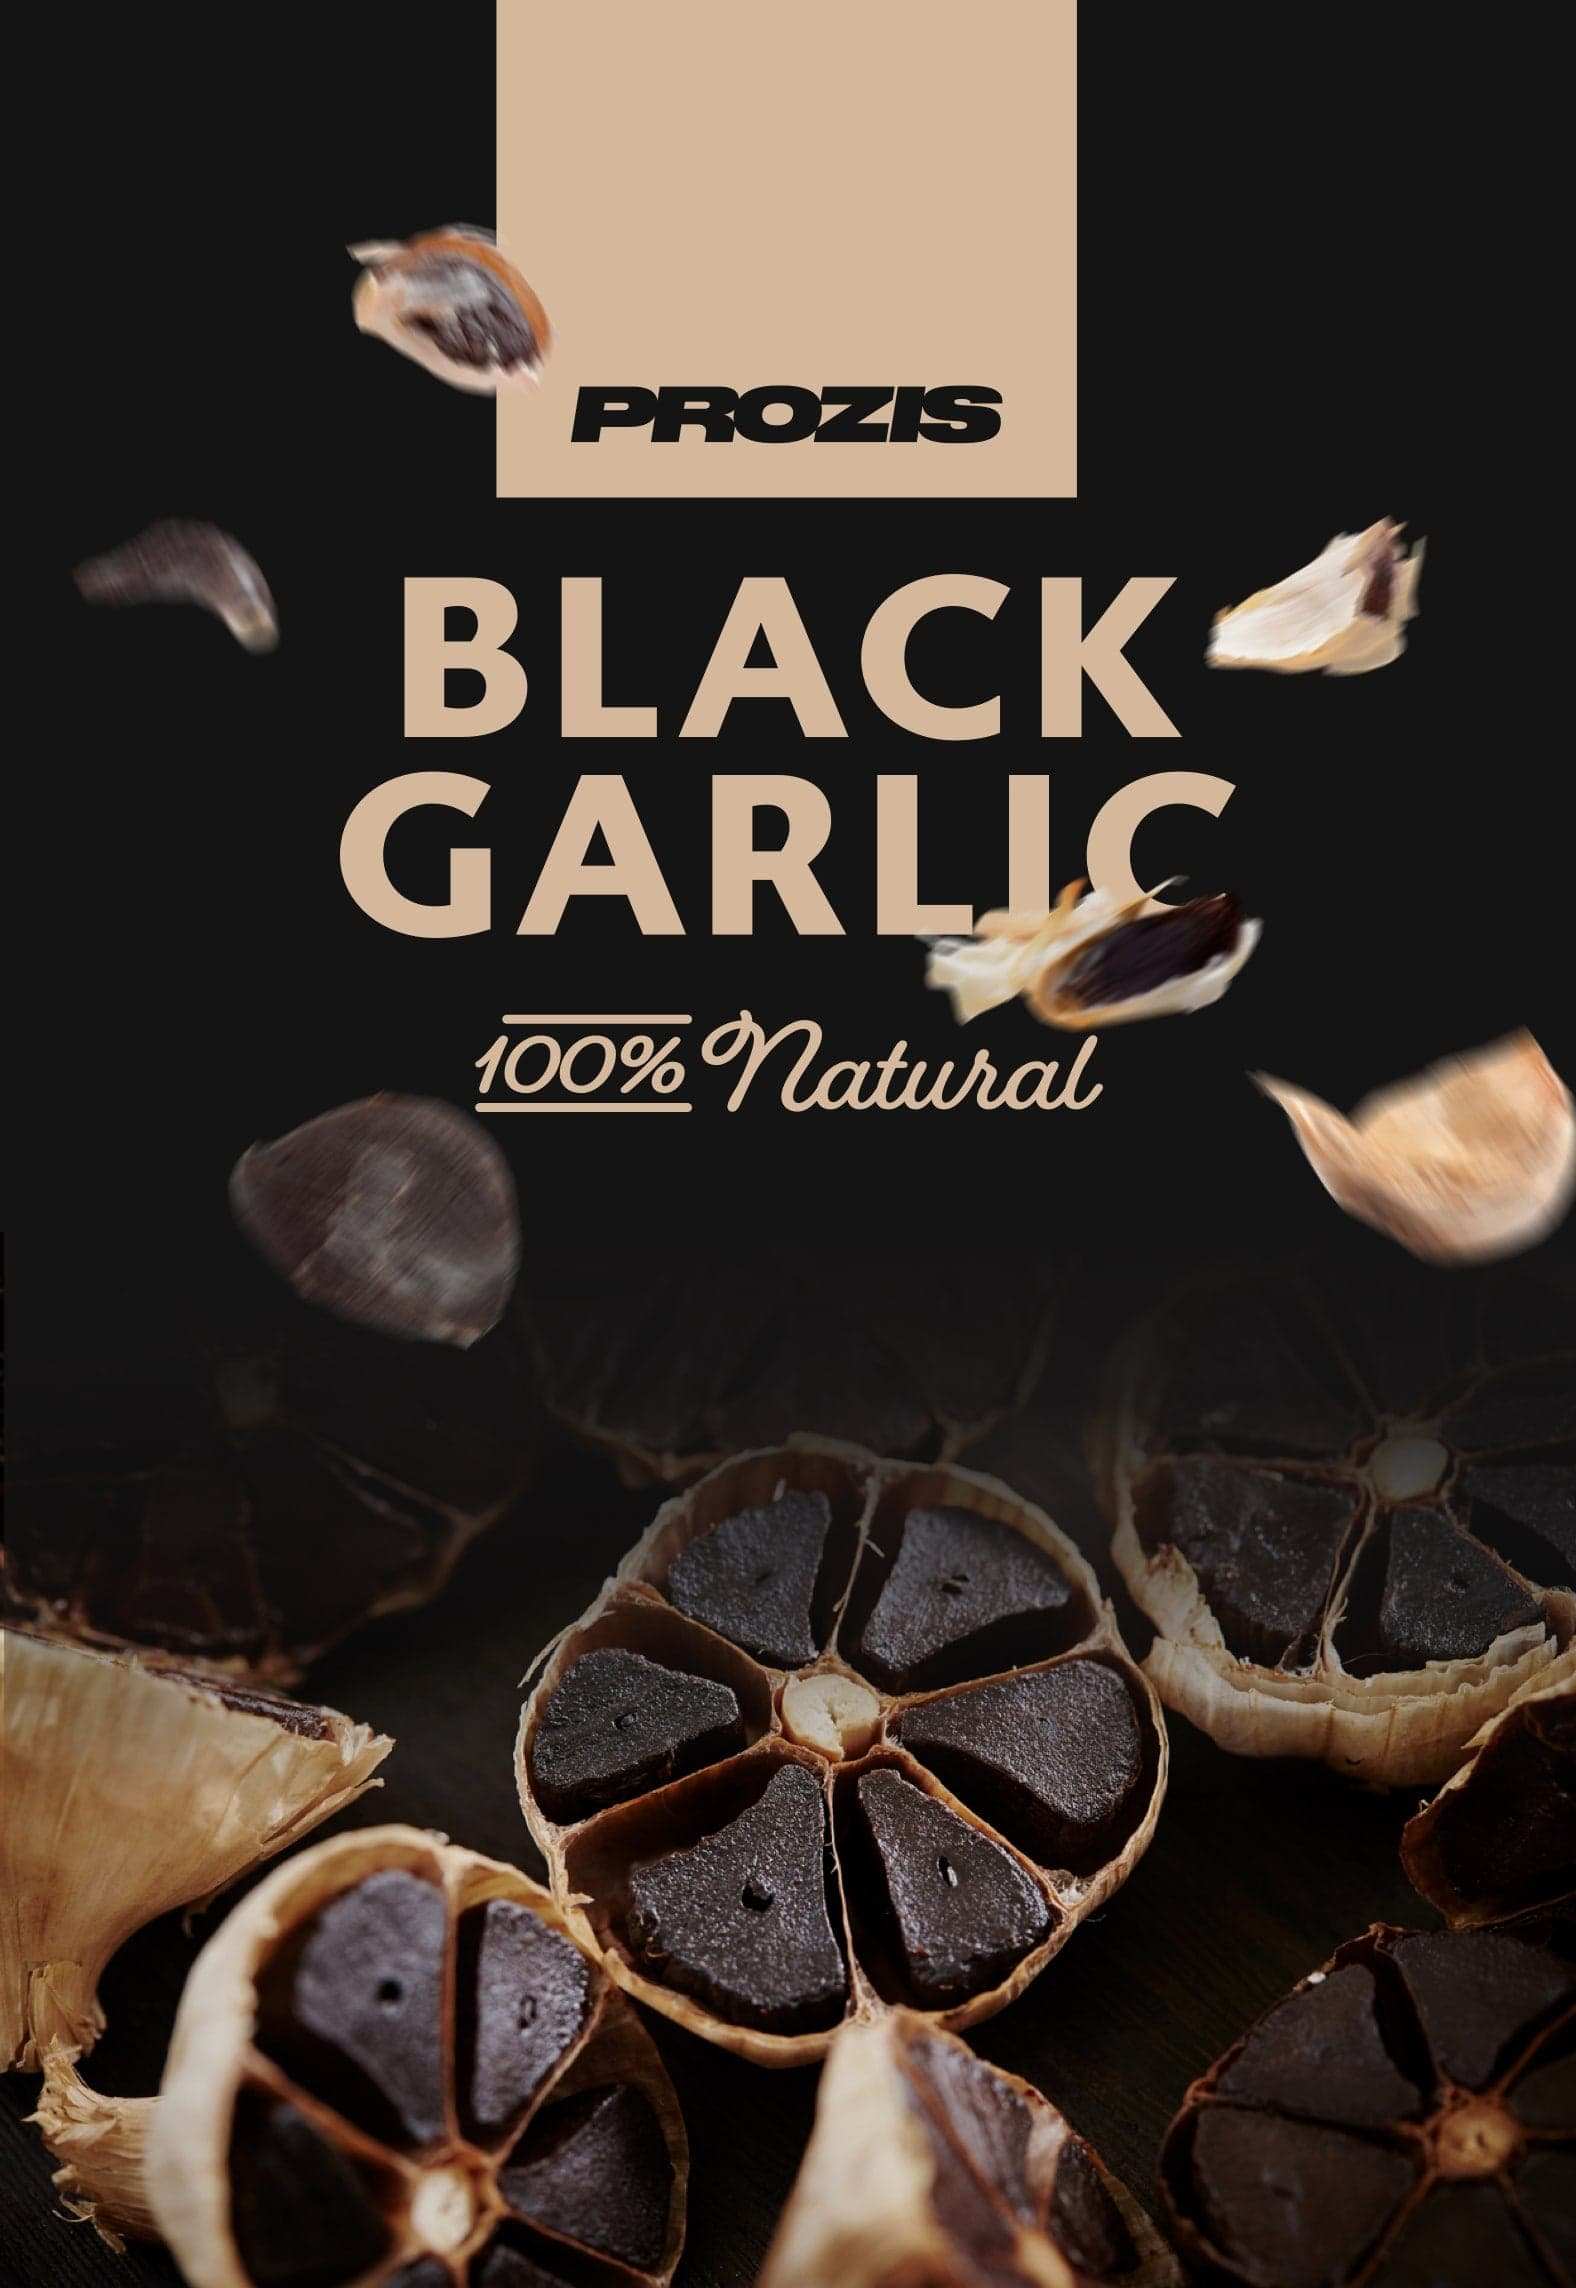 Prozis Black Garlic